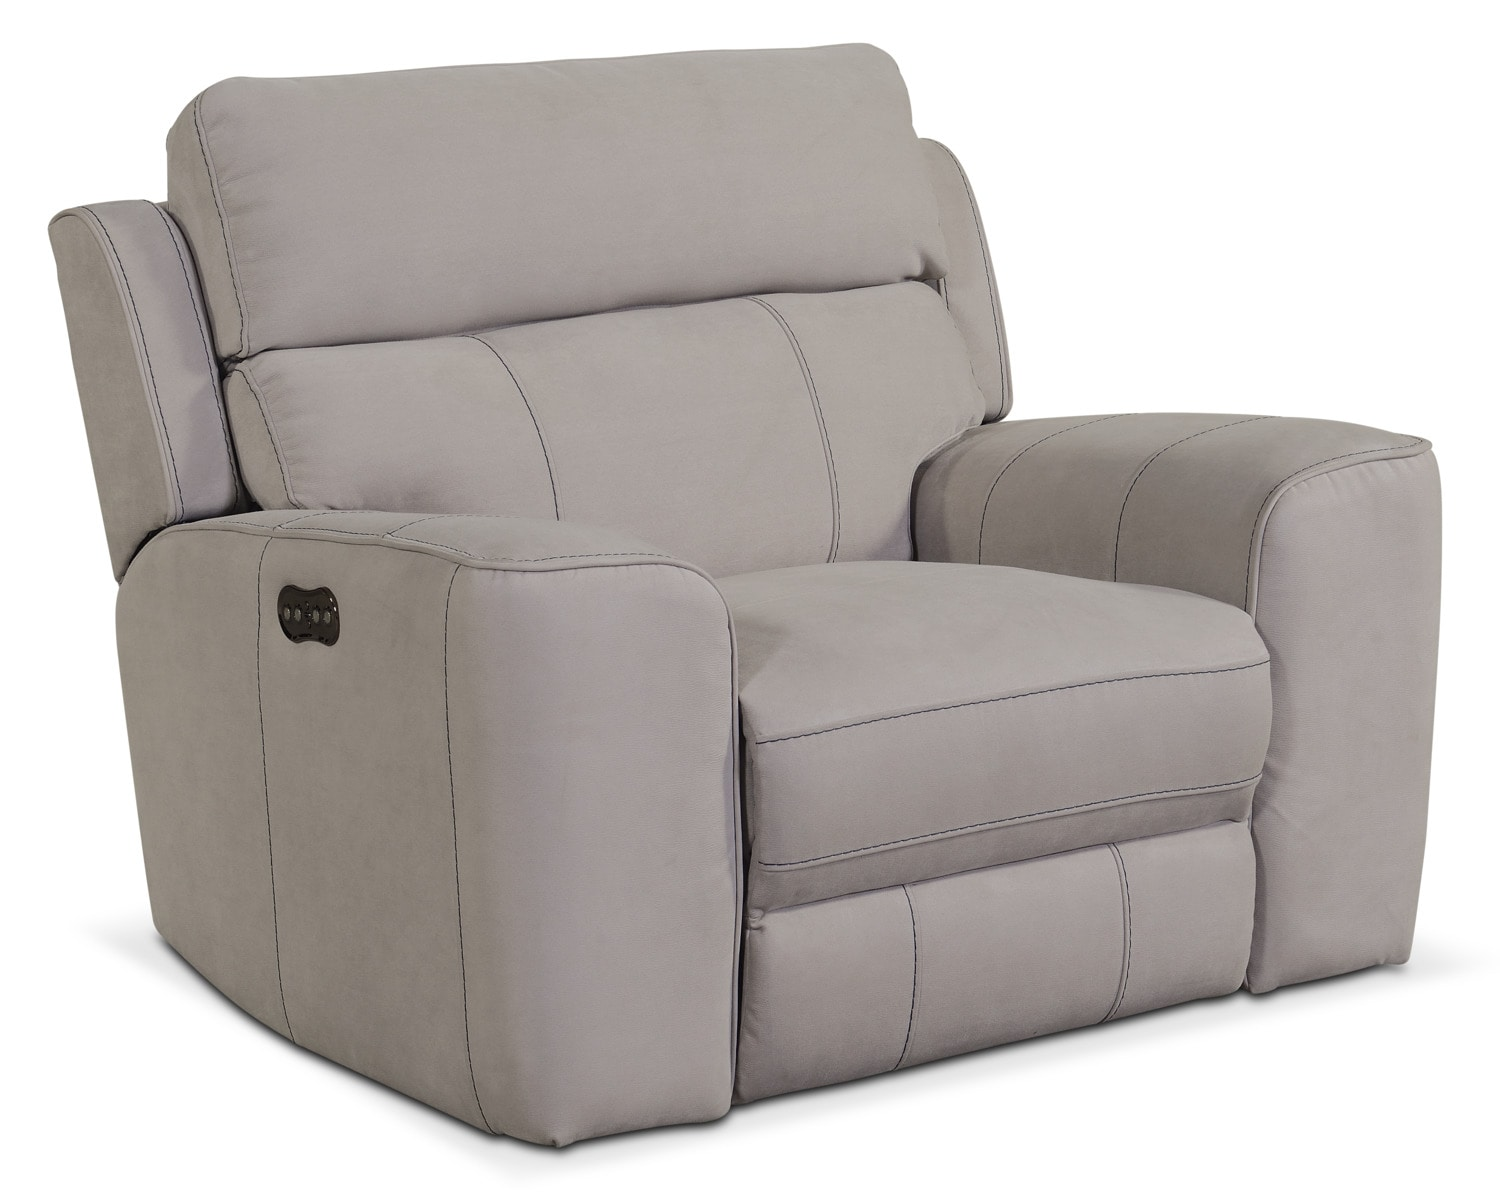 Gray Recliner Chair Newport Power Recliner Light Gray Value City Furniture